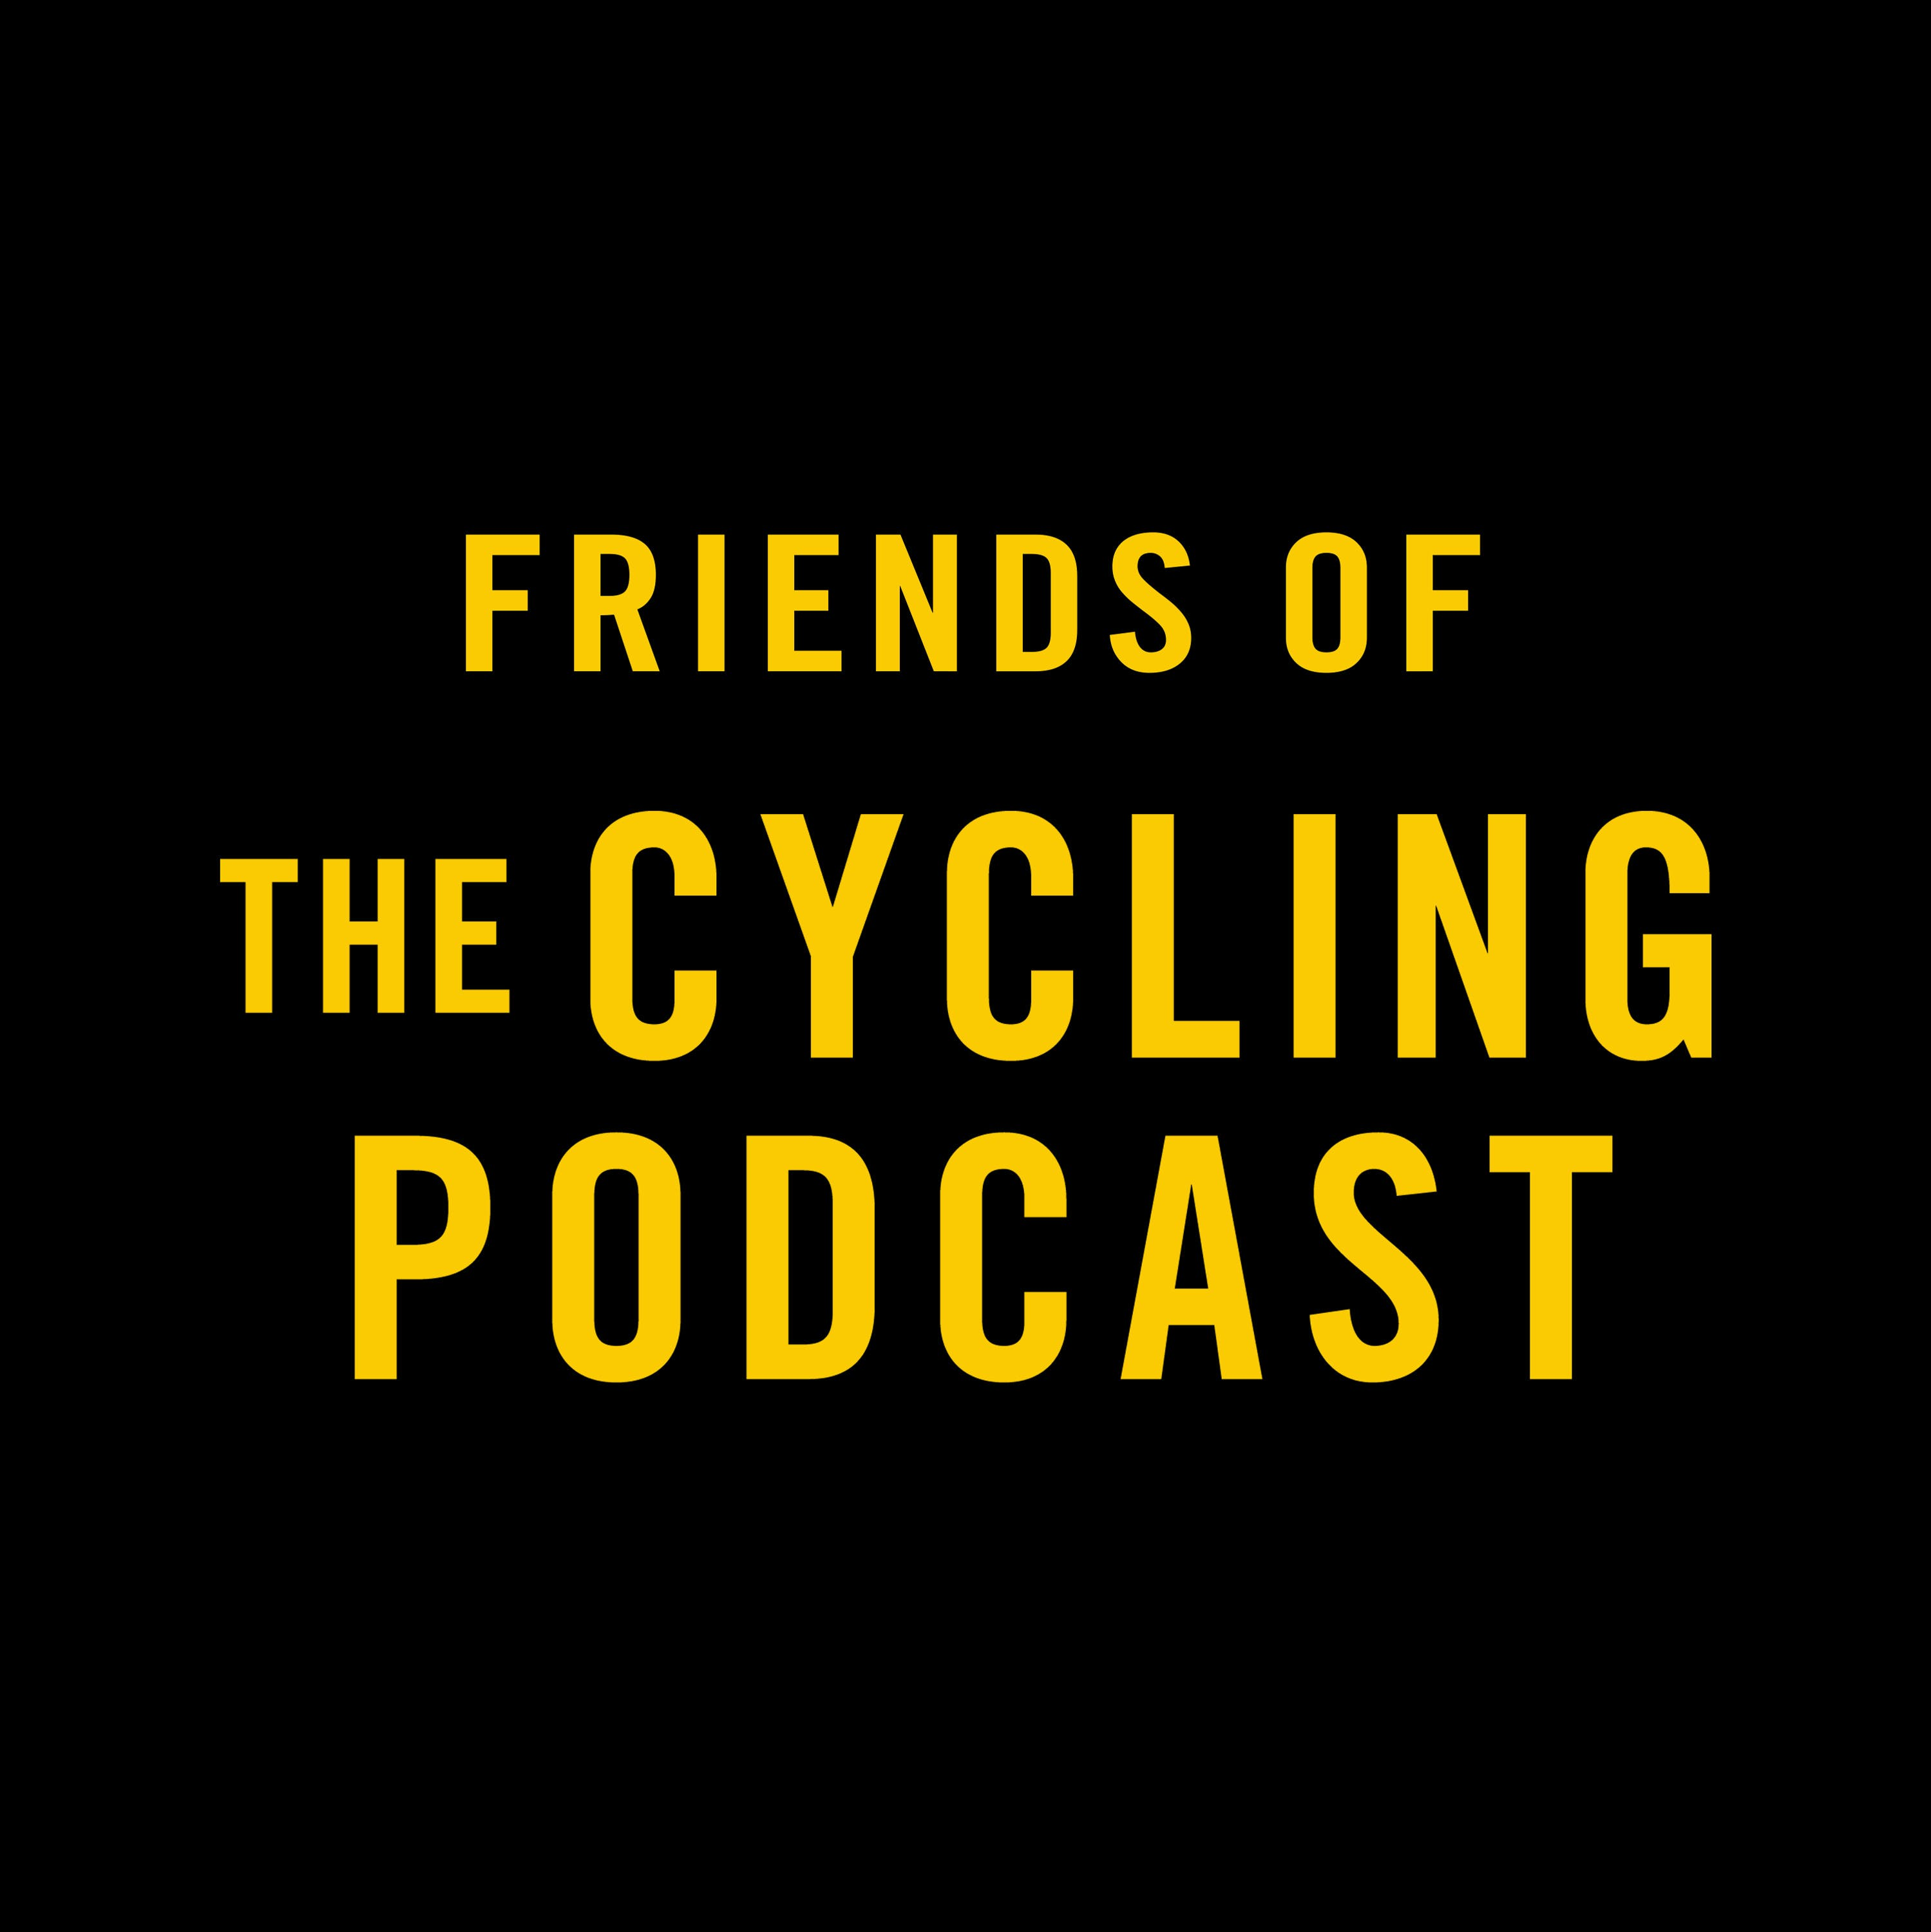 Friends of The Cycling Podcast podcast tile